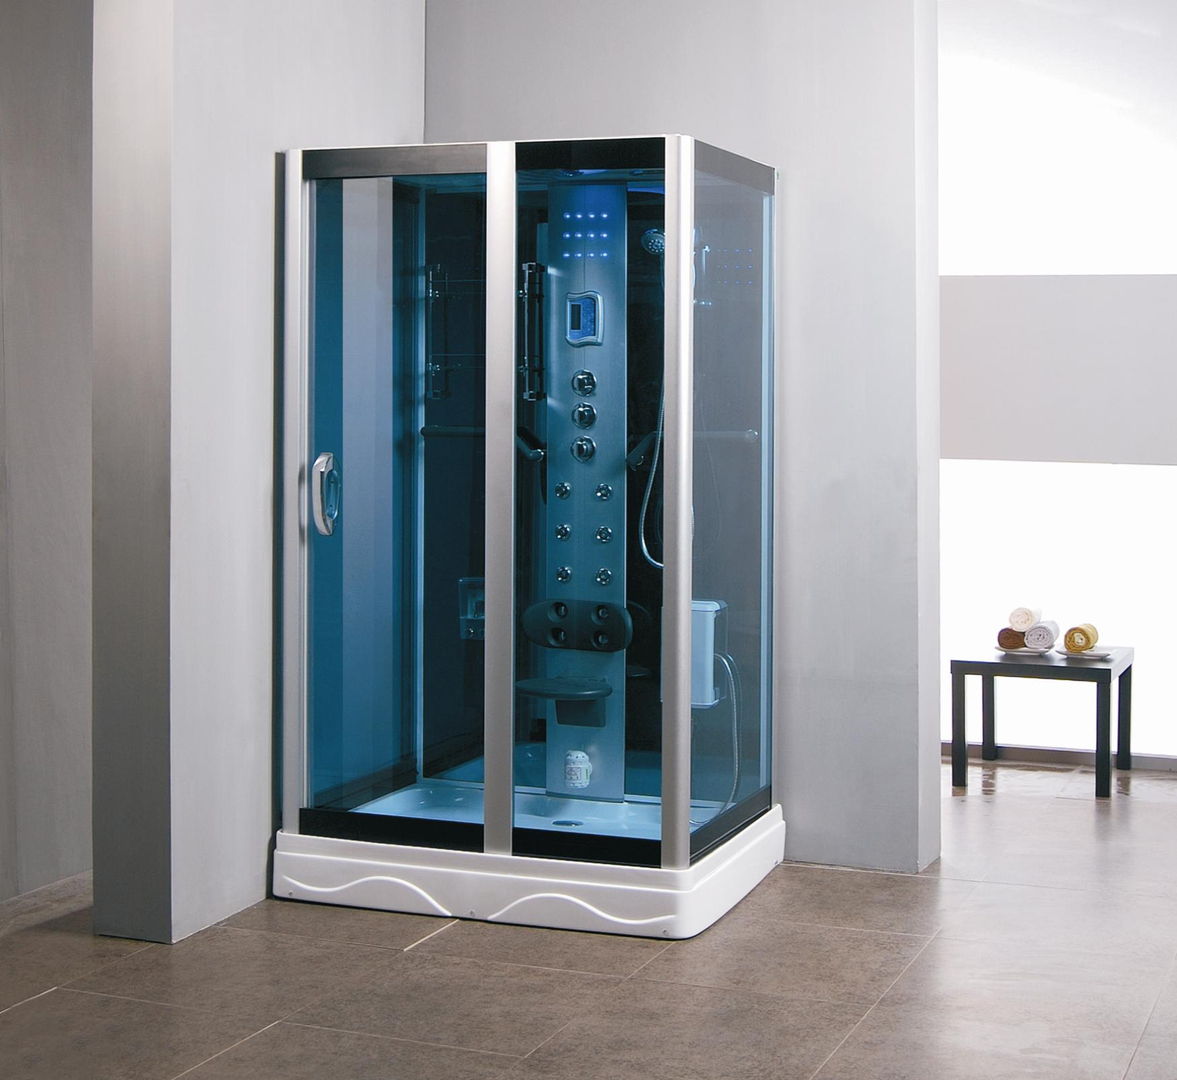 Kokss 9009 Shower Room Enclosure with Massage Hydro Jets, LED Lights ...